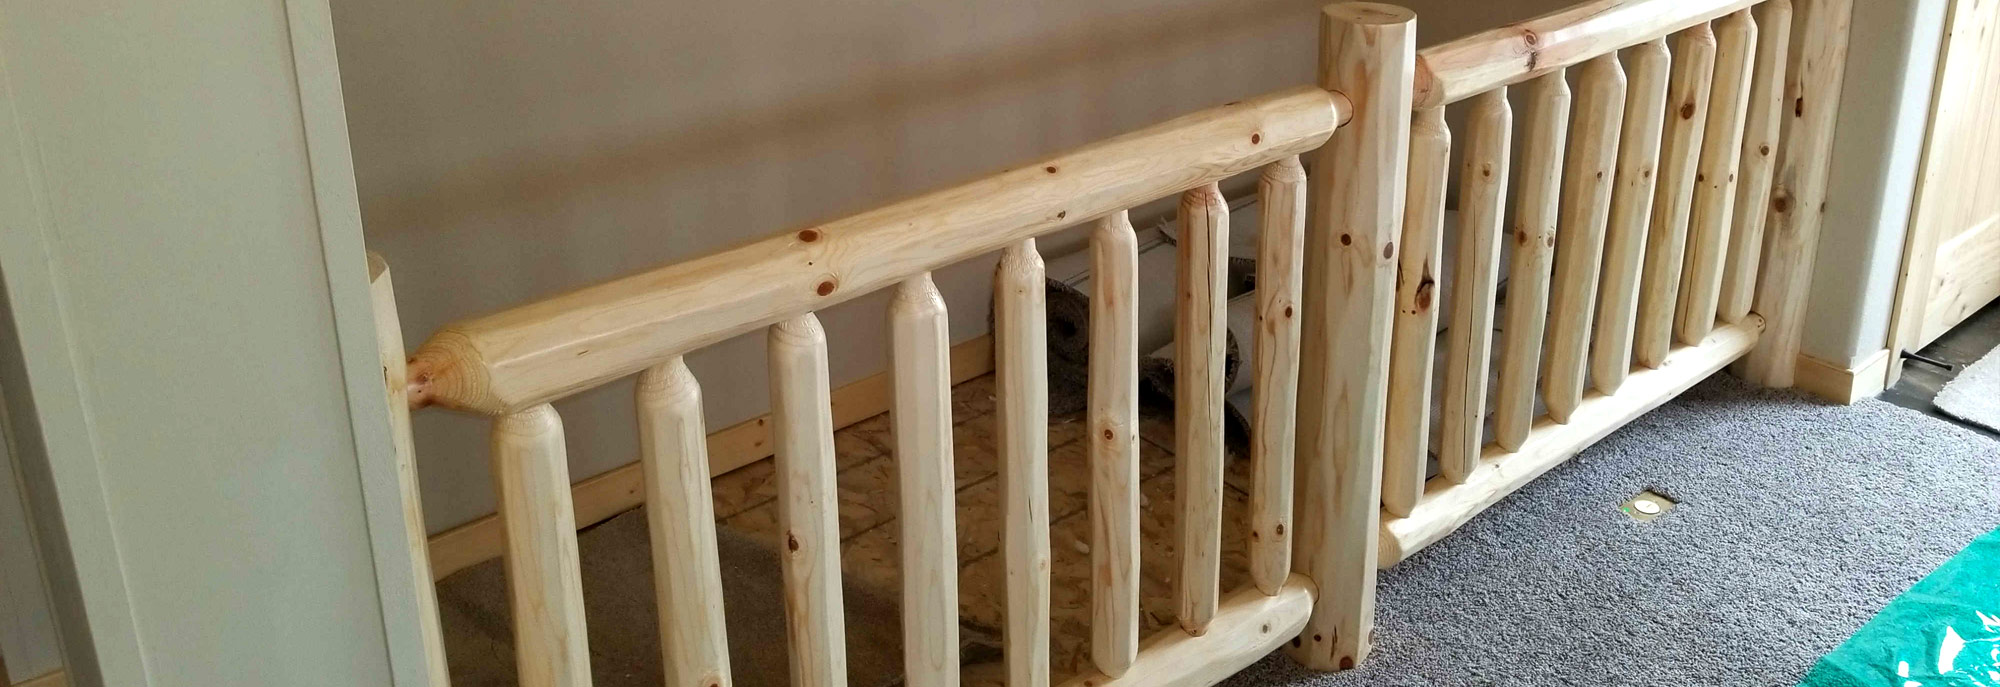 The pine stair railing of the Spicer Model Modular Home built by Factory Home Center